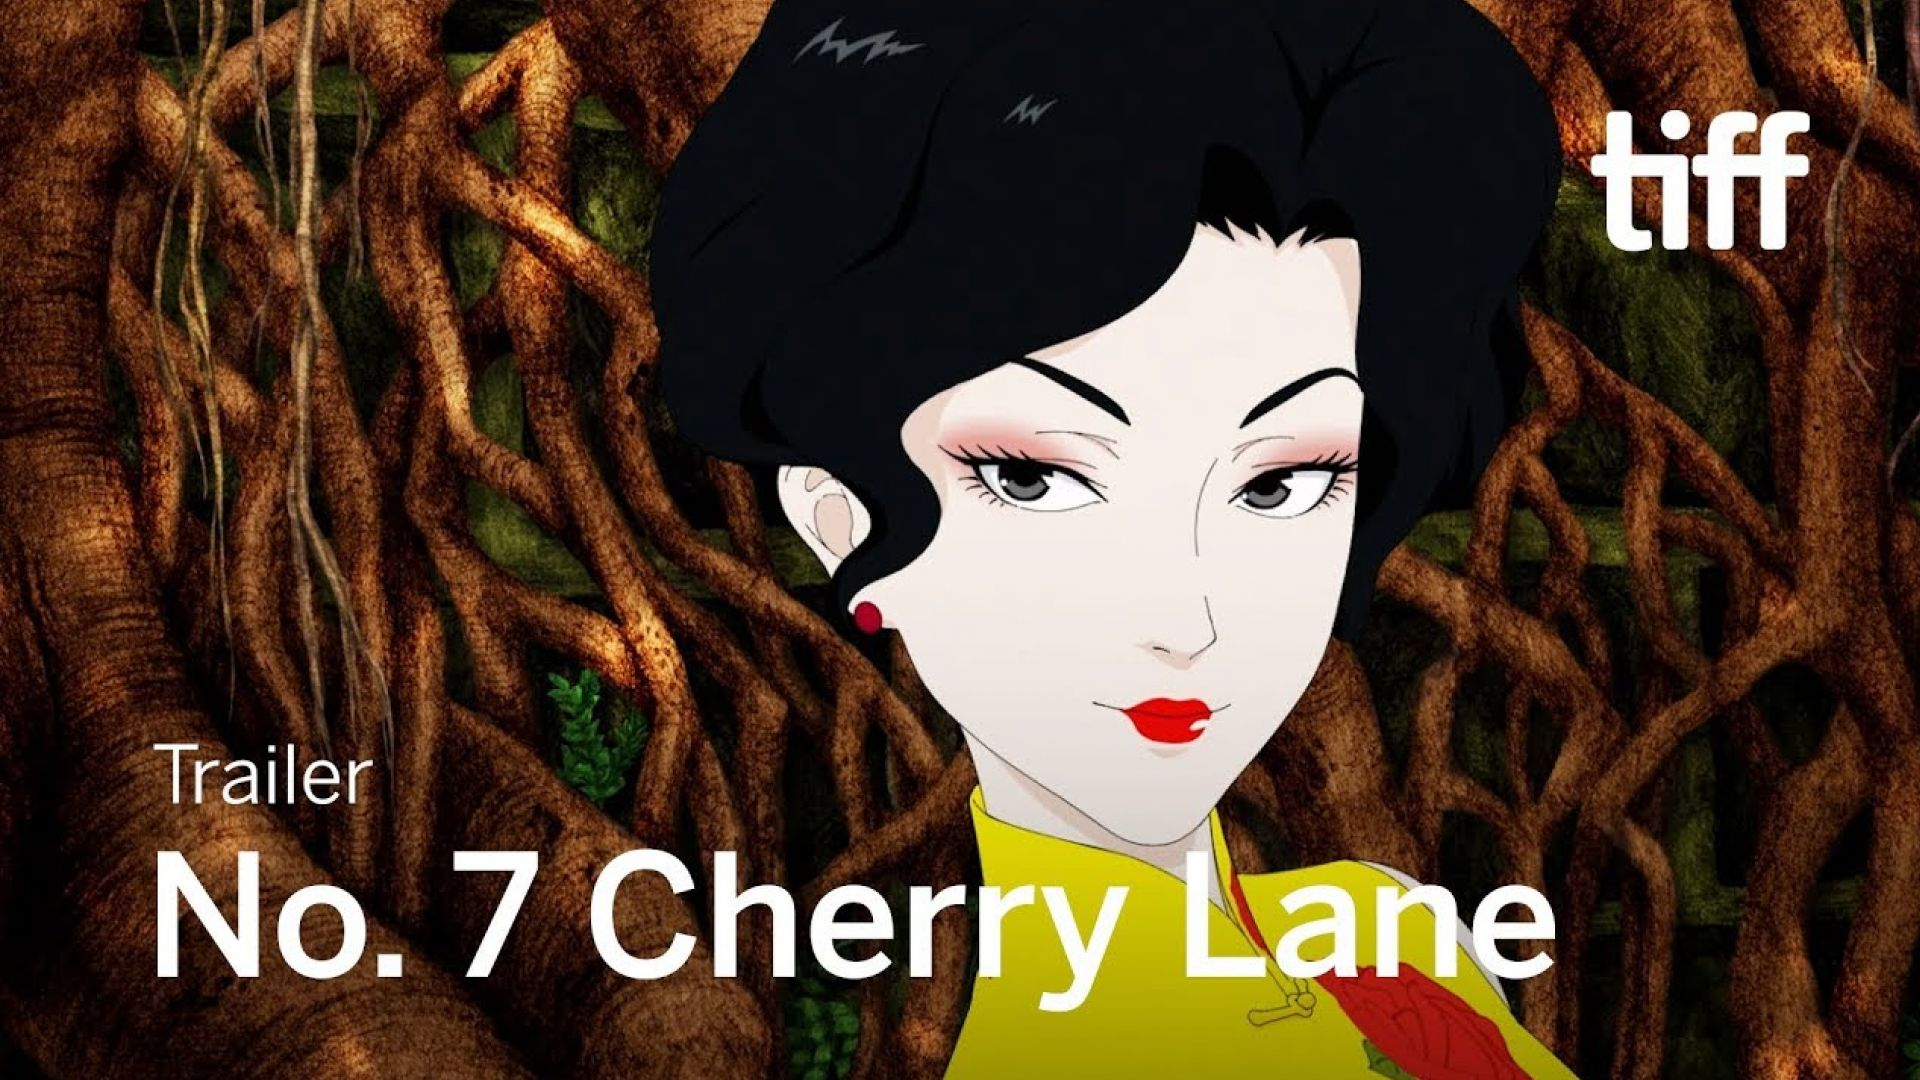 'No. 7 Cherry Lane' trailer